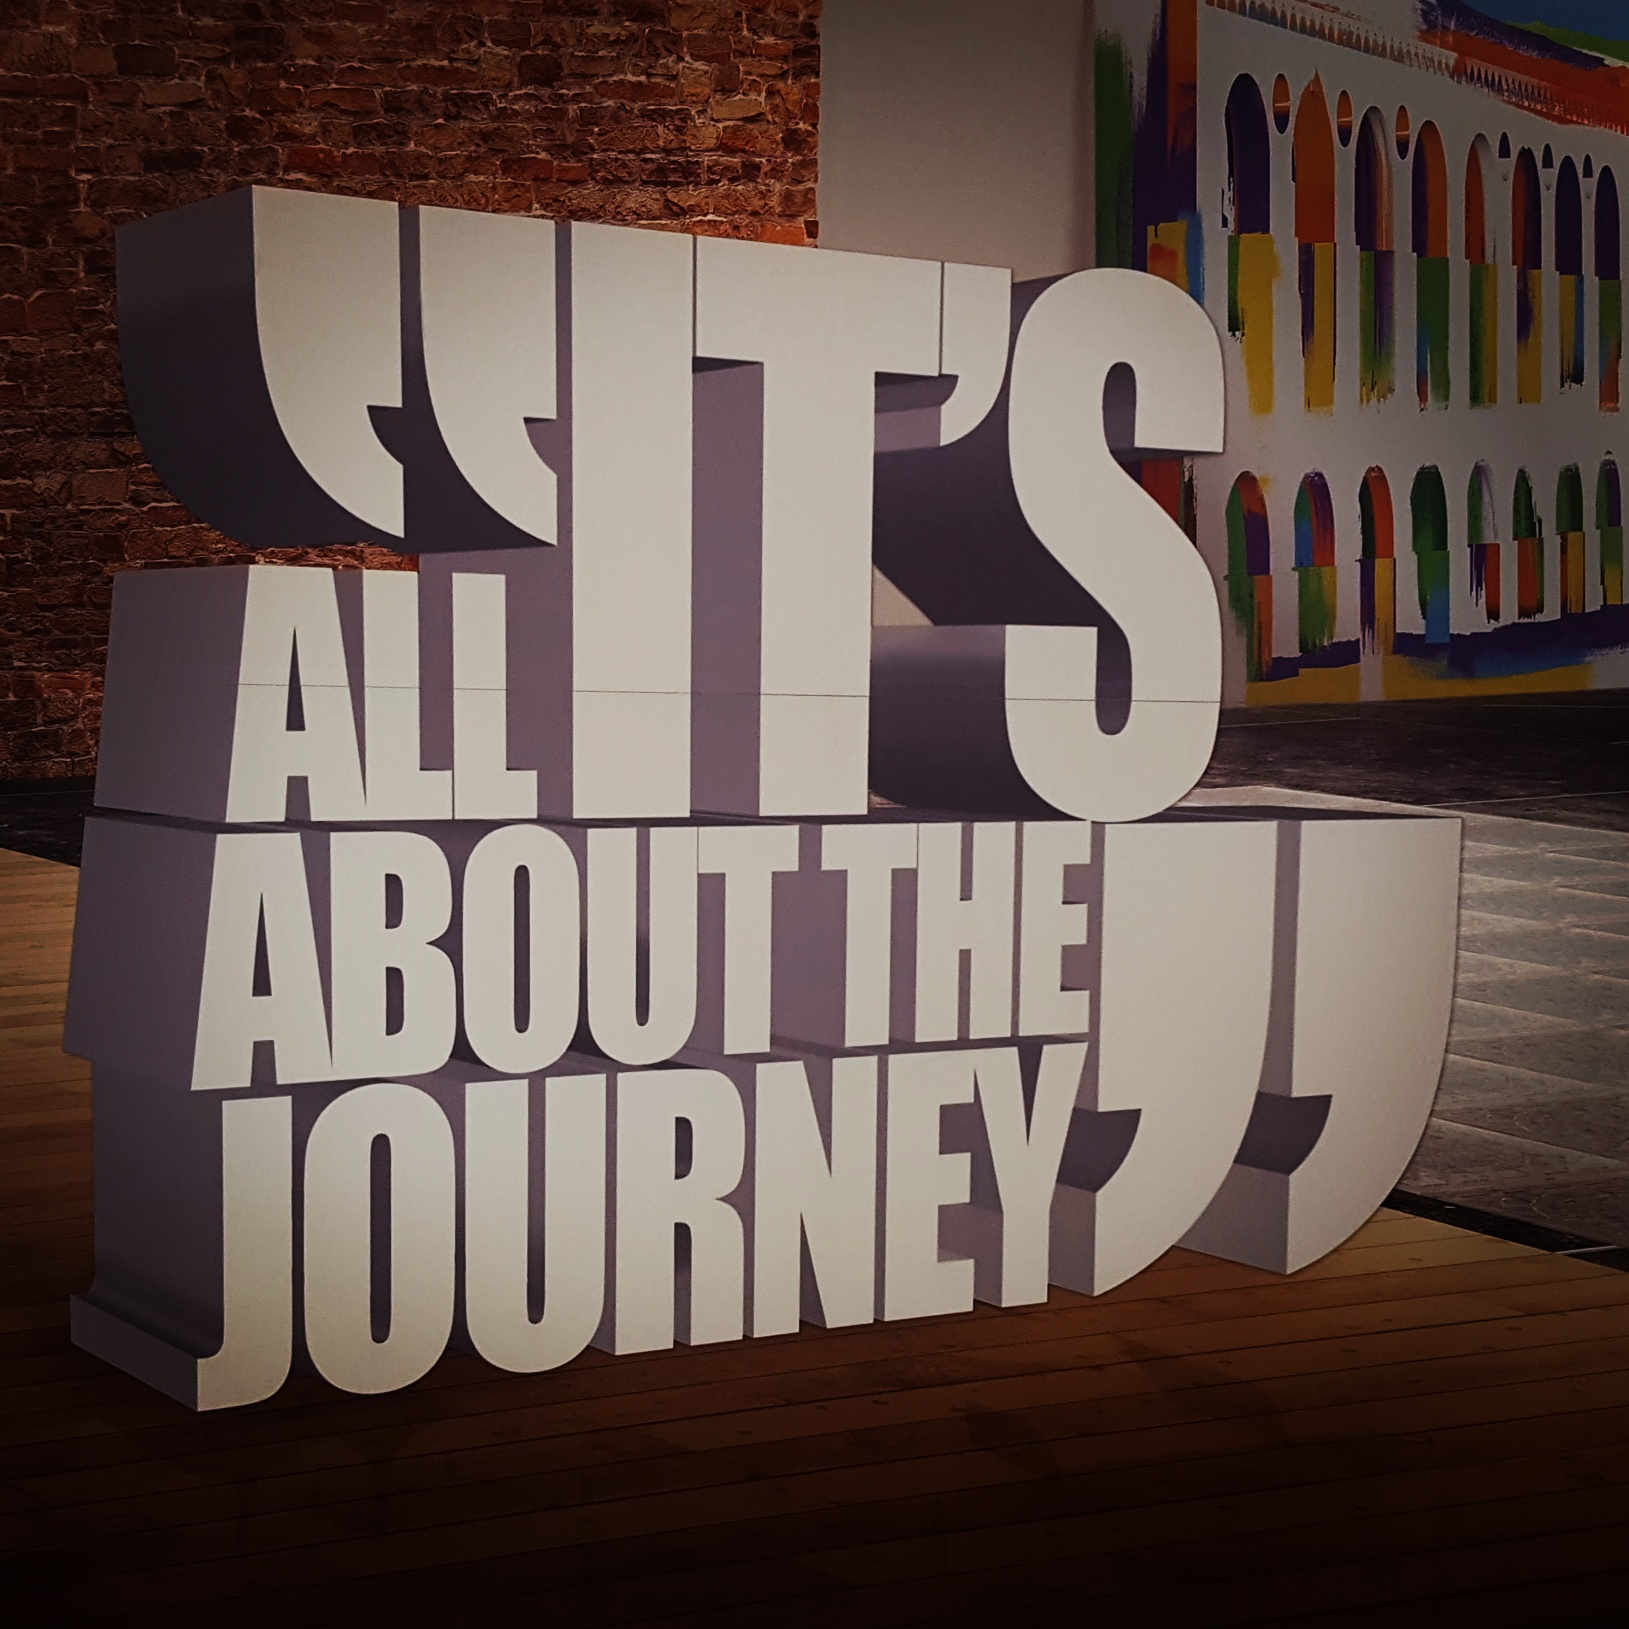 It's all about the journey!